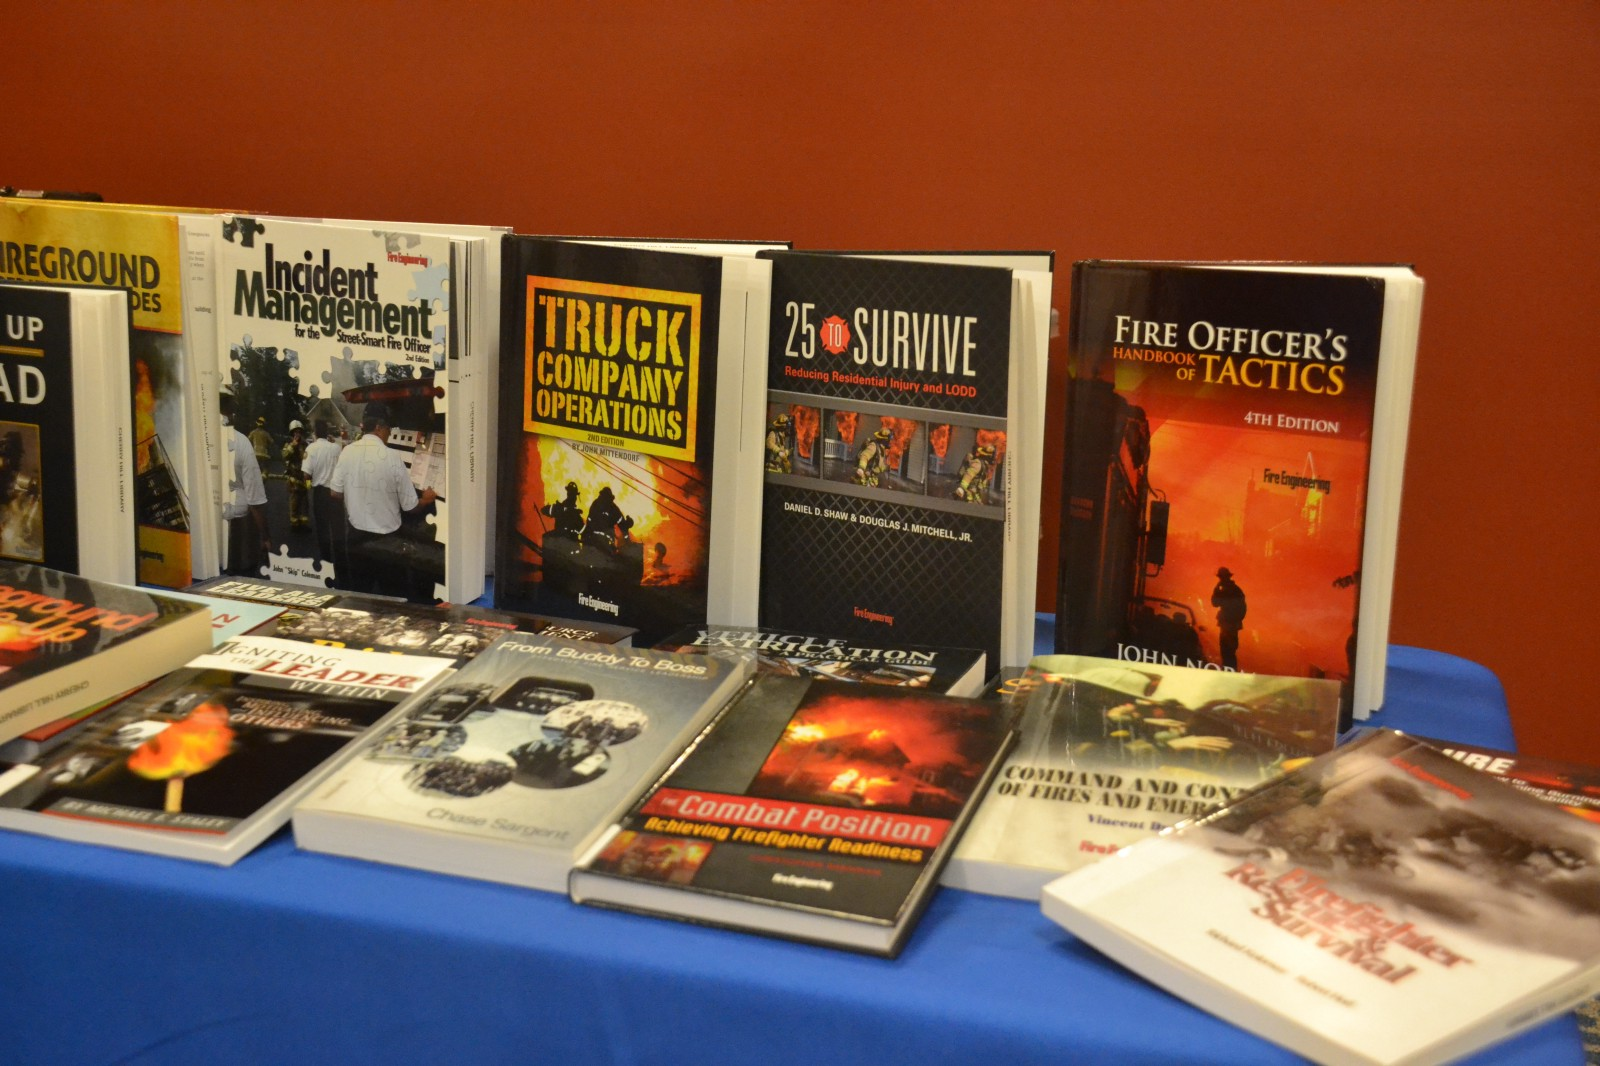 All of the books on display at Monday's ceremony are now available to read  at the Cherry Hill Public Library.